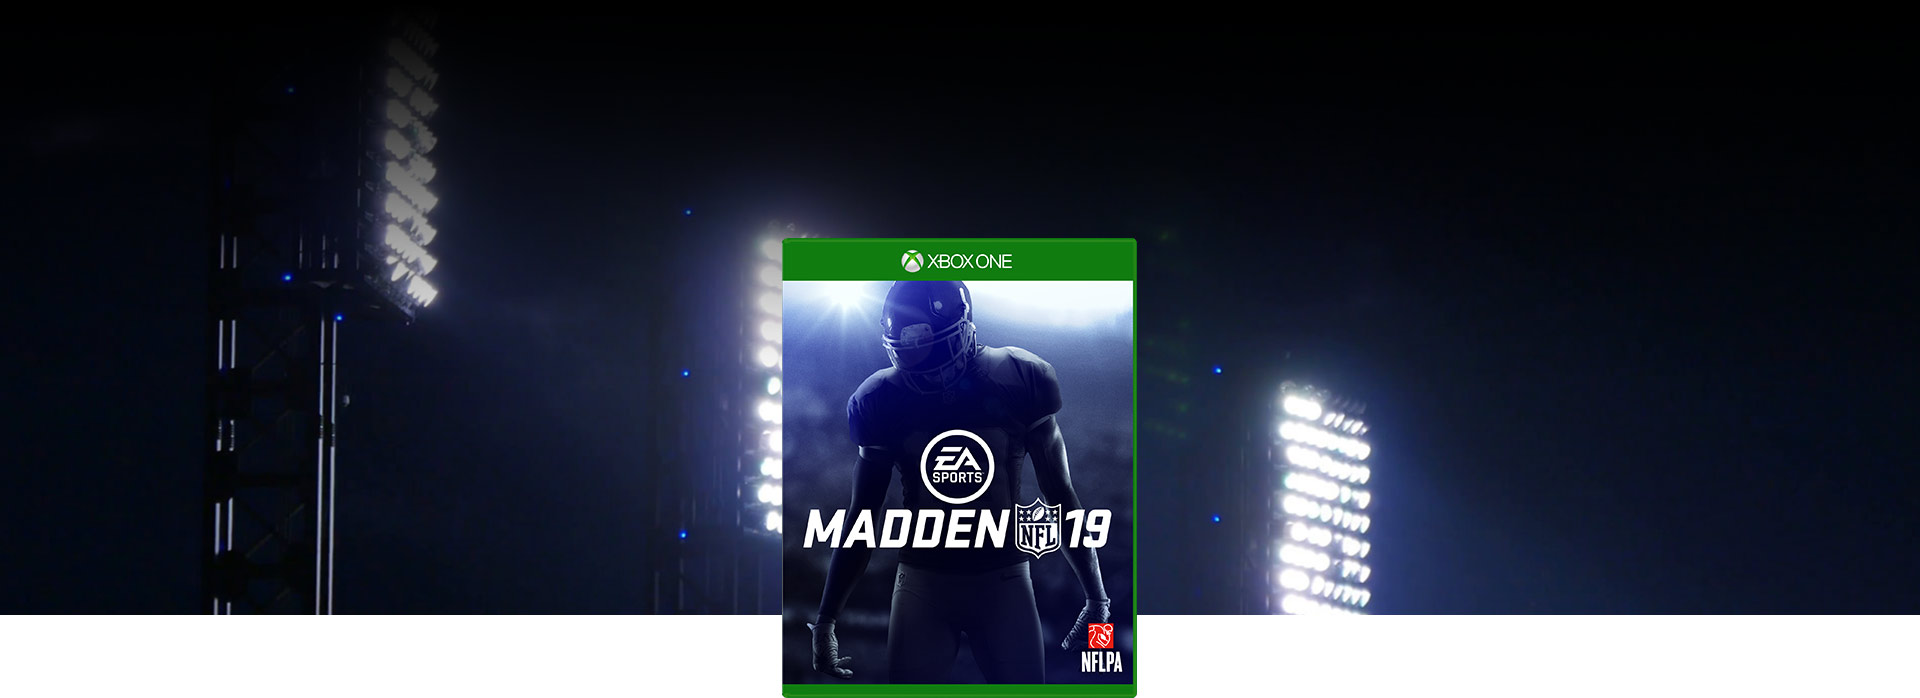 Madden NFL 19 box shot, Background of stadium lights